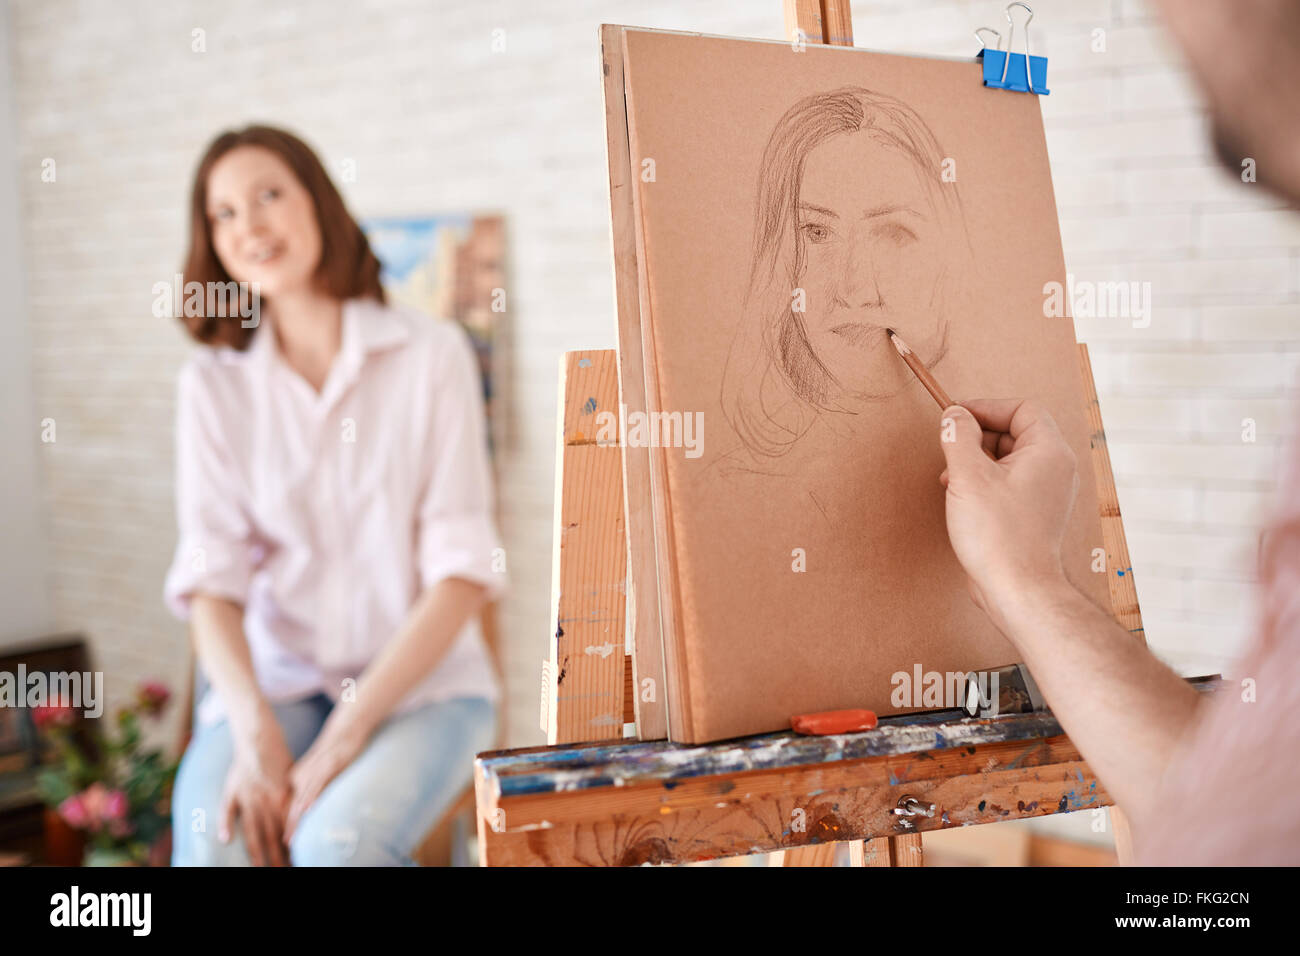 Male artist drawing portrait of woman - Stock Image